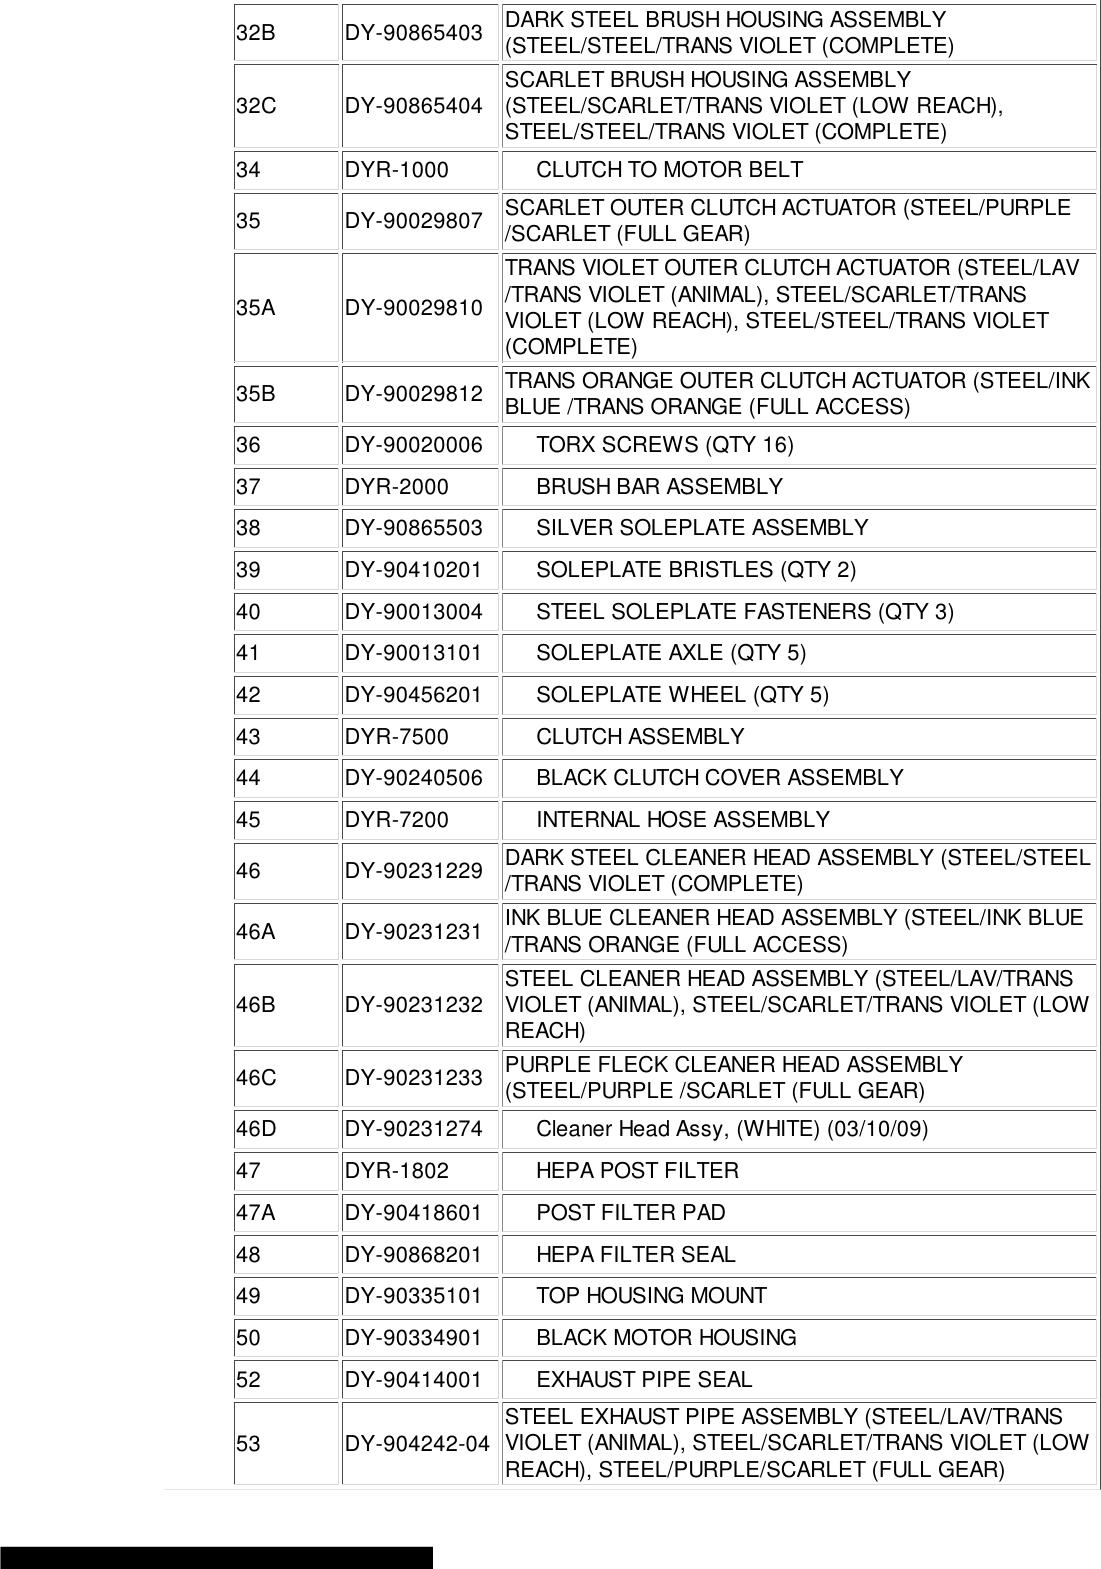 Dyson Dc14 Parts List 822403 Manualslib Makes It Easy To Find Animal Diagram Page 8 Of 12